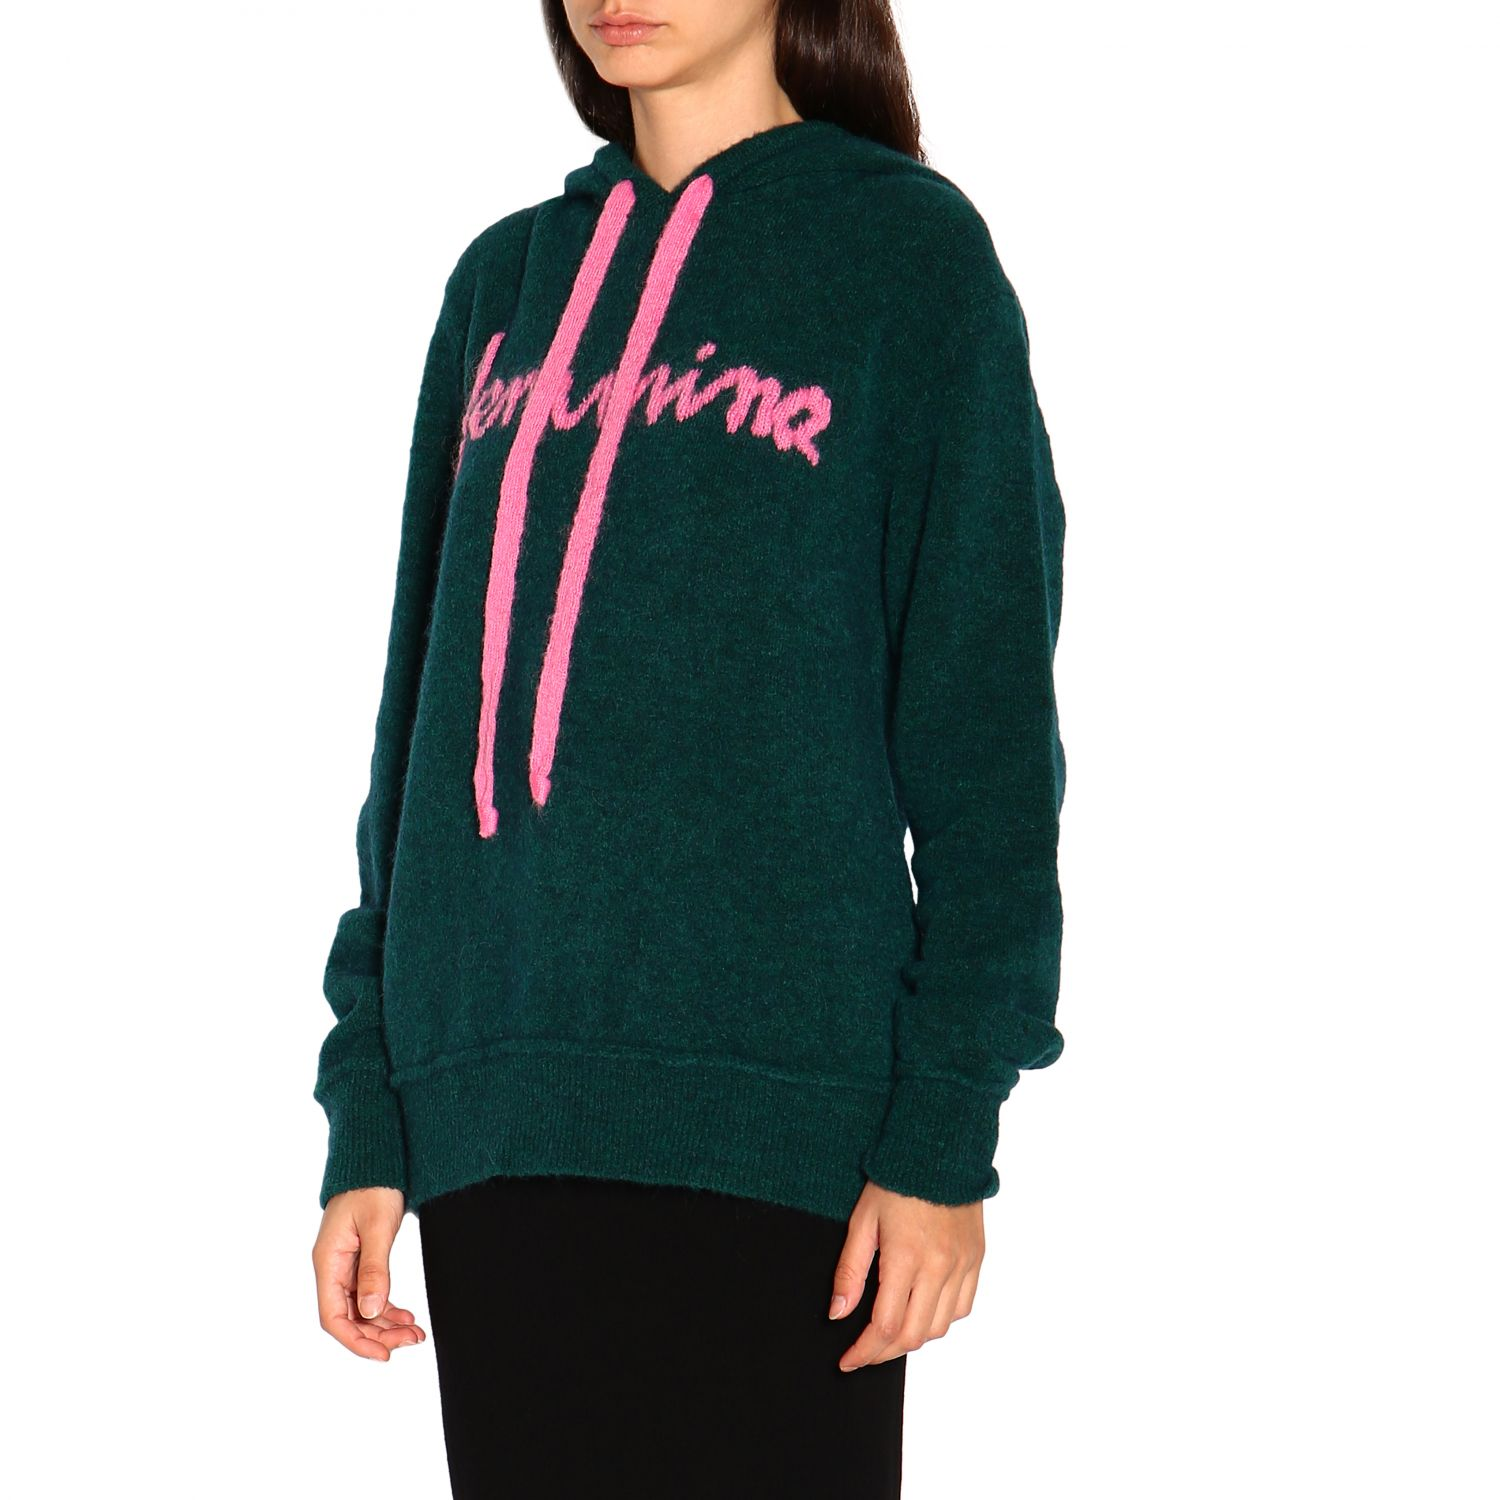 Sweatshirt women Marco Rambaldi green 4